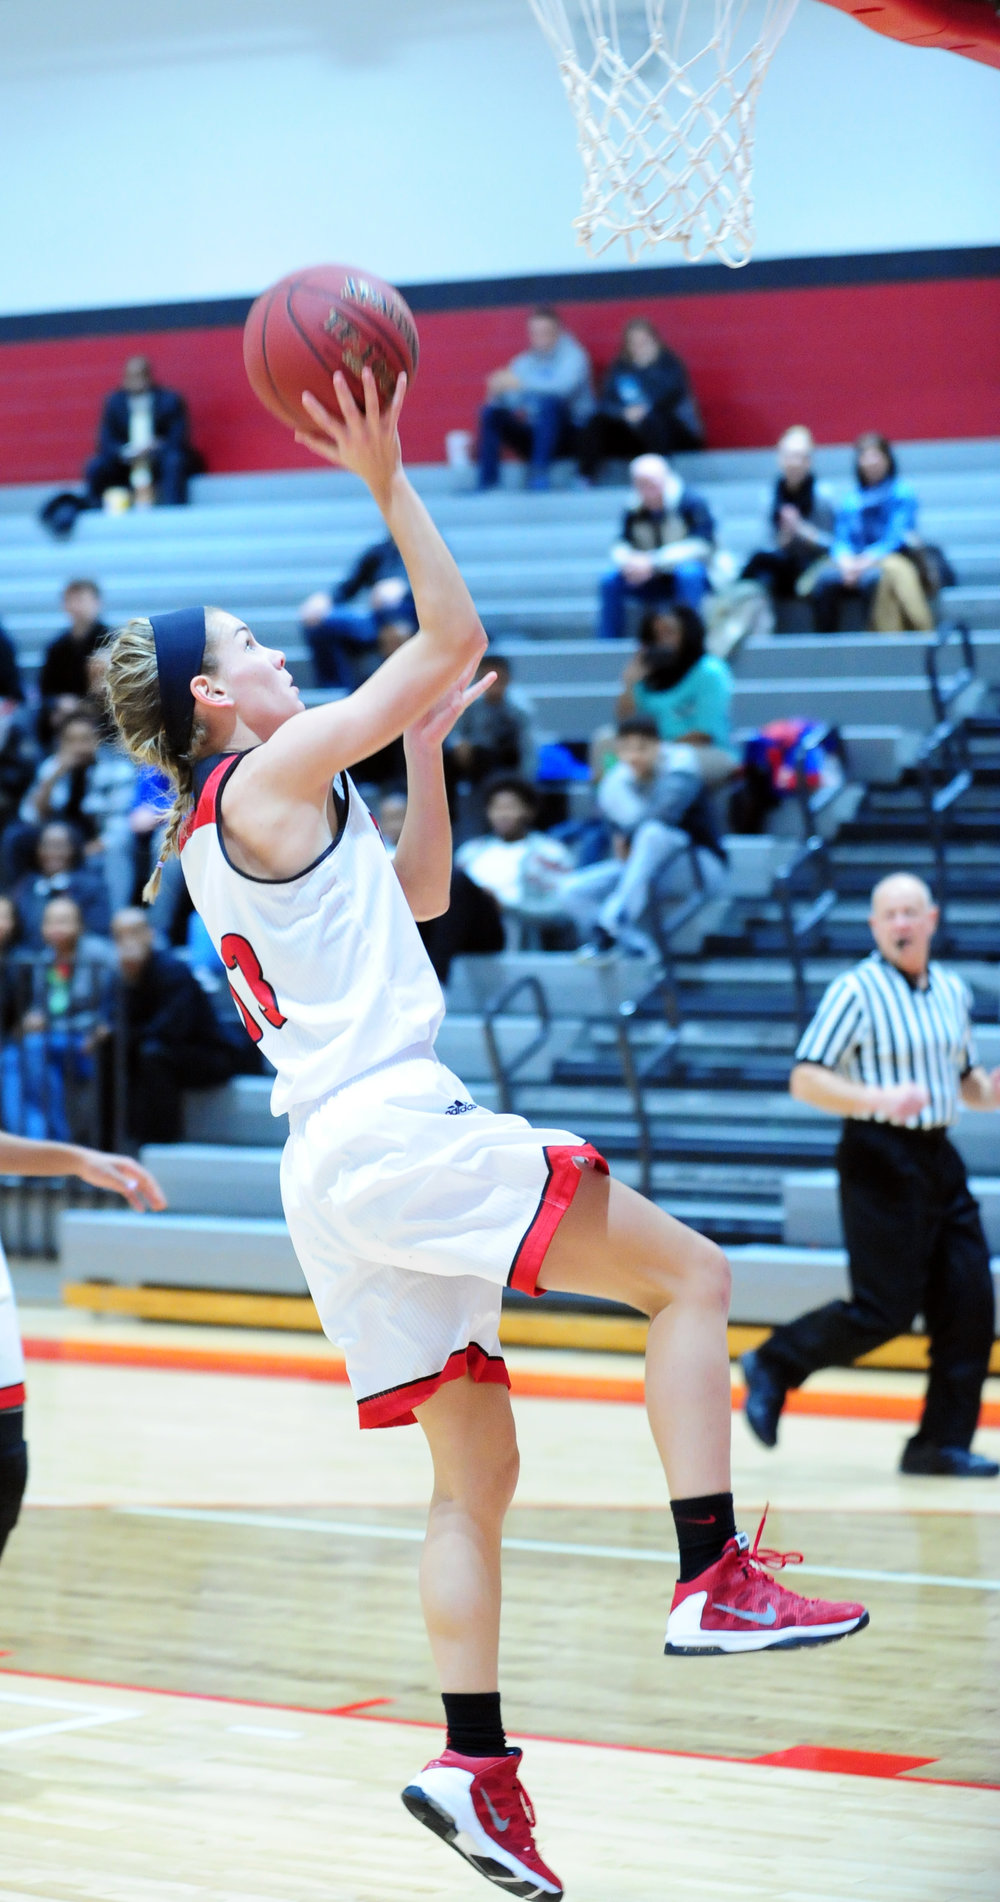 NICK INGRAM/Citizen photo Park Hill senior guard Jenna Winebrenner goes in for a layup against Lee's Summit on Thursday, Jan. 26 at Park Hill High School in Kansas City, Mo.